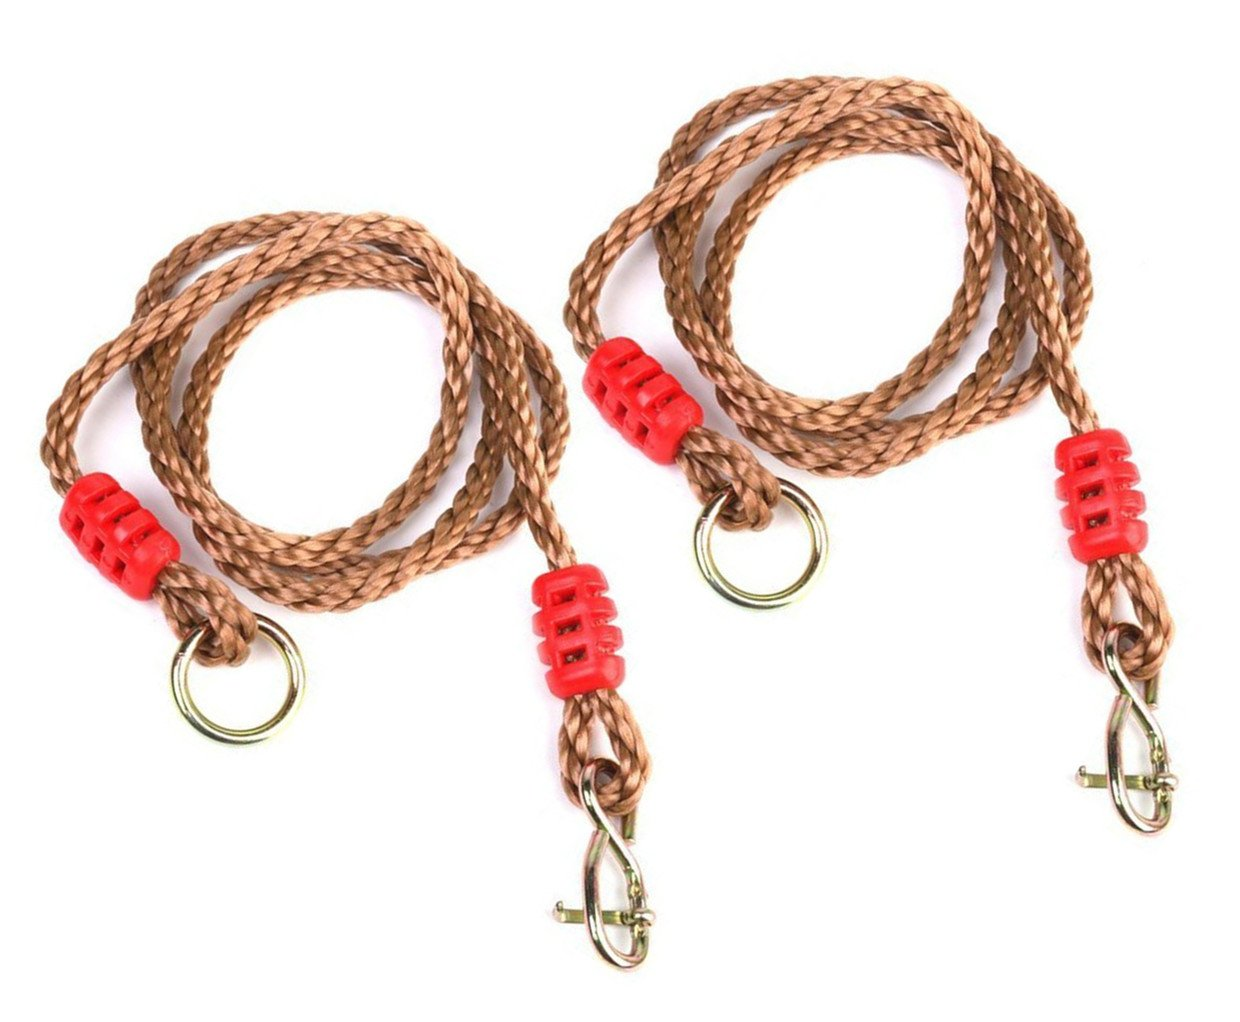 COMINGFIT 650lbs Capacity Hammock Chair Hanging Ropes Outdoor Hammock Hanging Straps Tree Swing Ropes (Pack of 2)